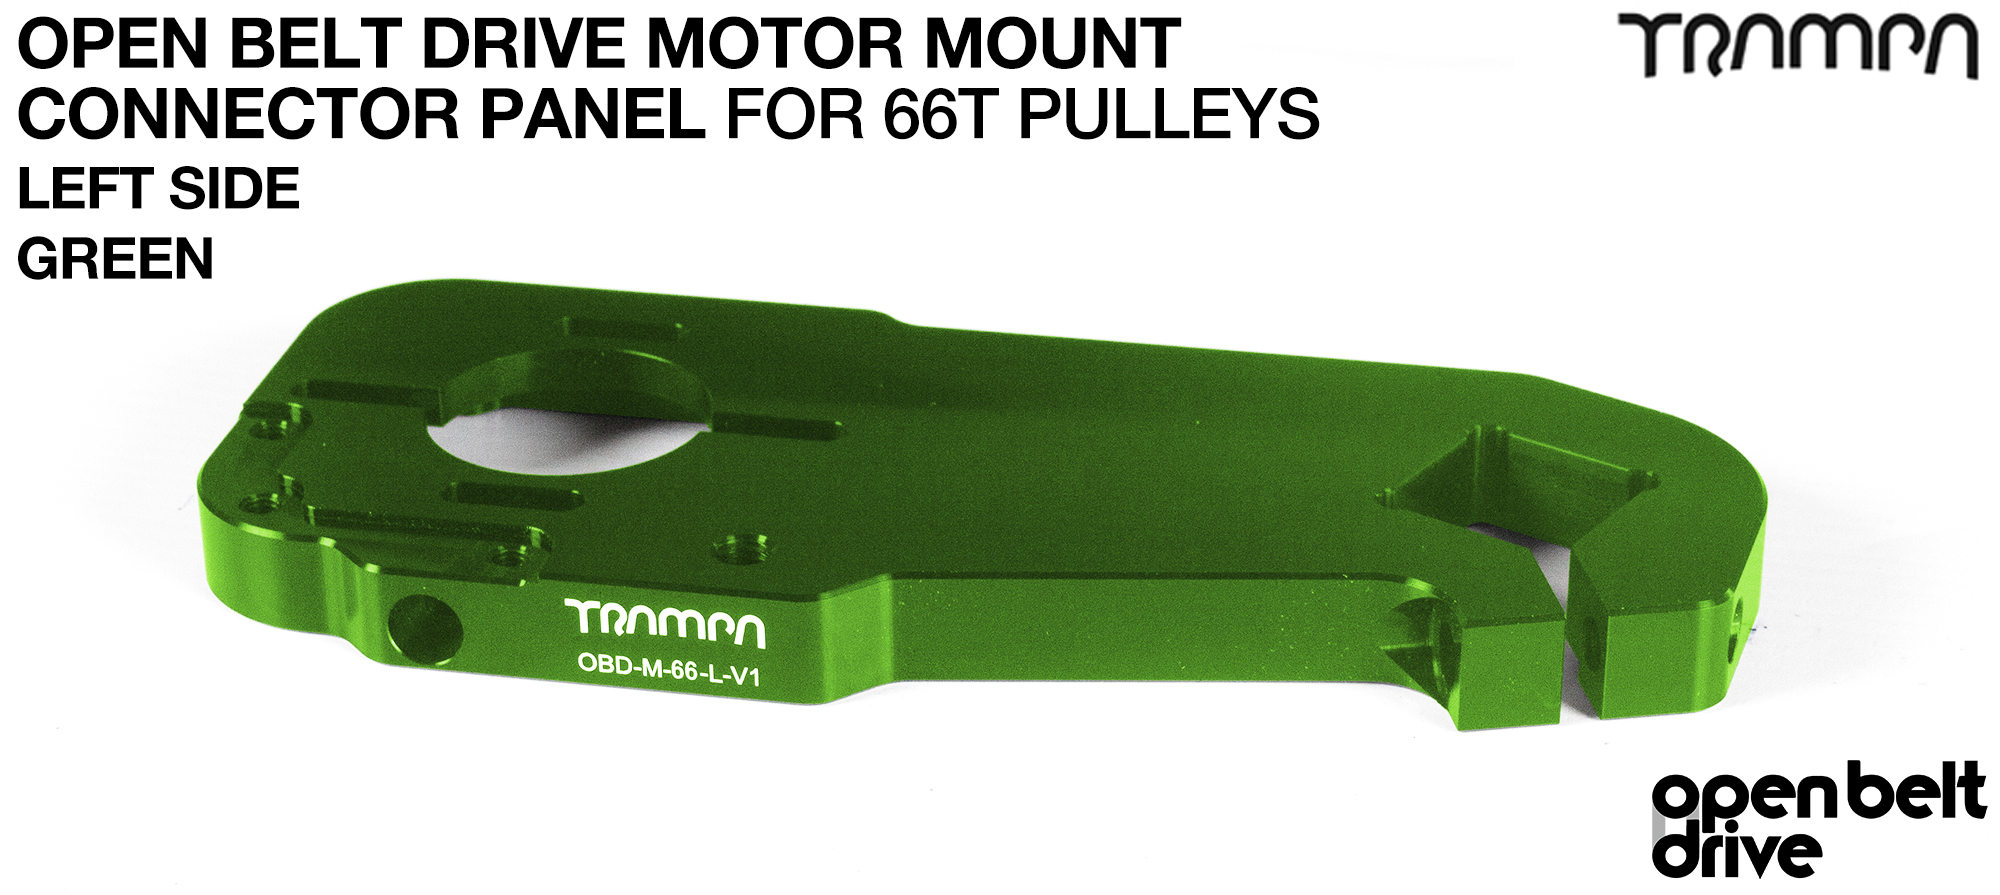 OBD Motor Mount Connector Panel for 66 tooth Pulleys - REGULAR - GREEN